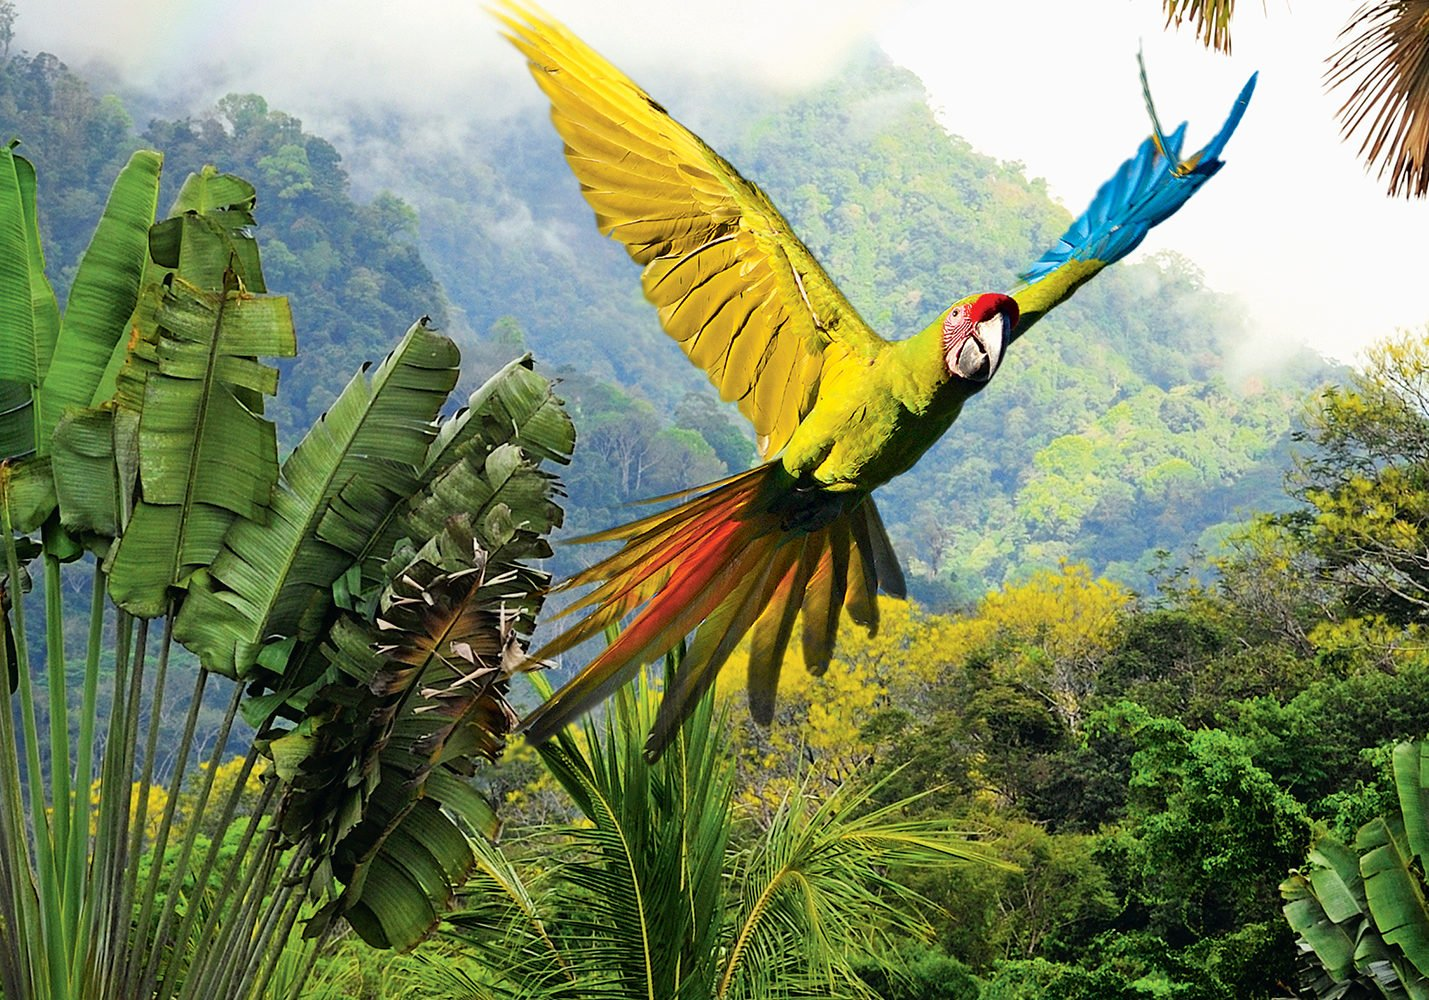 Nature is anything but reserved in Costa Rica.